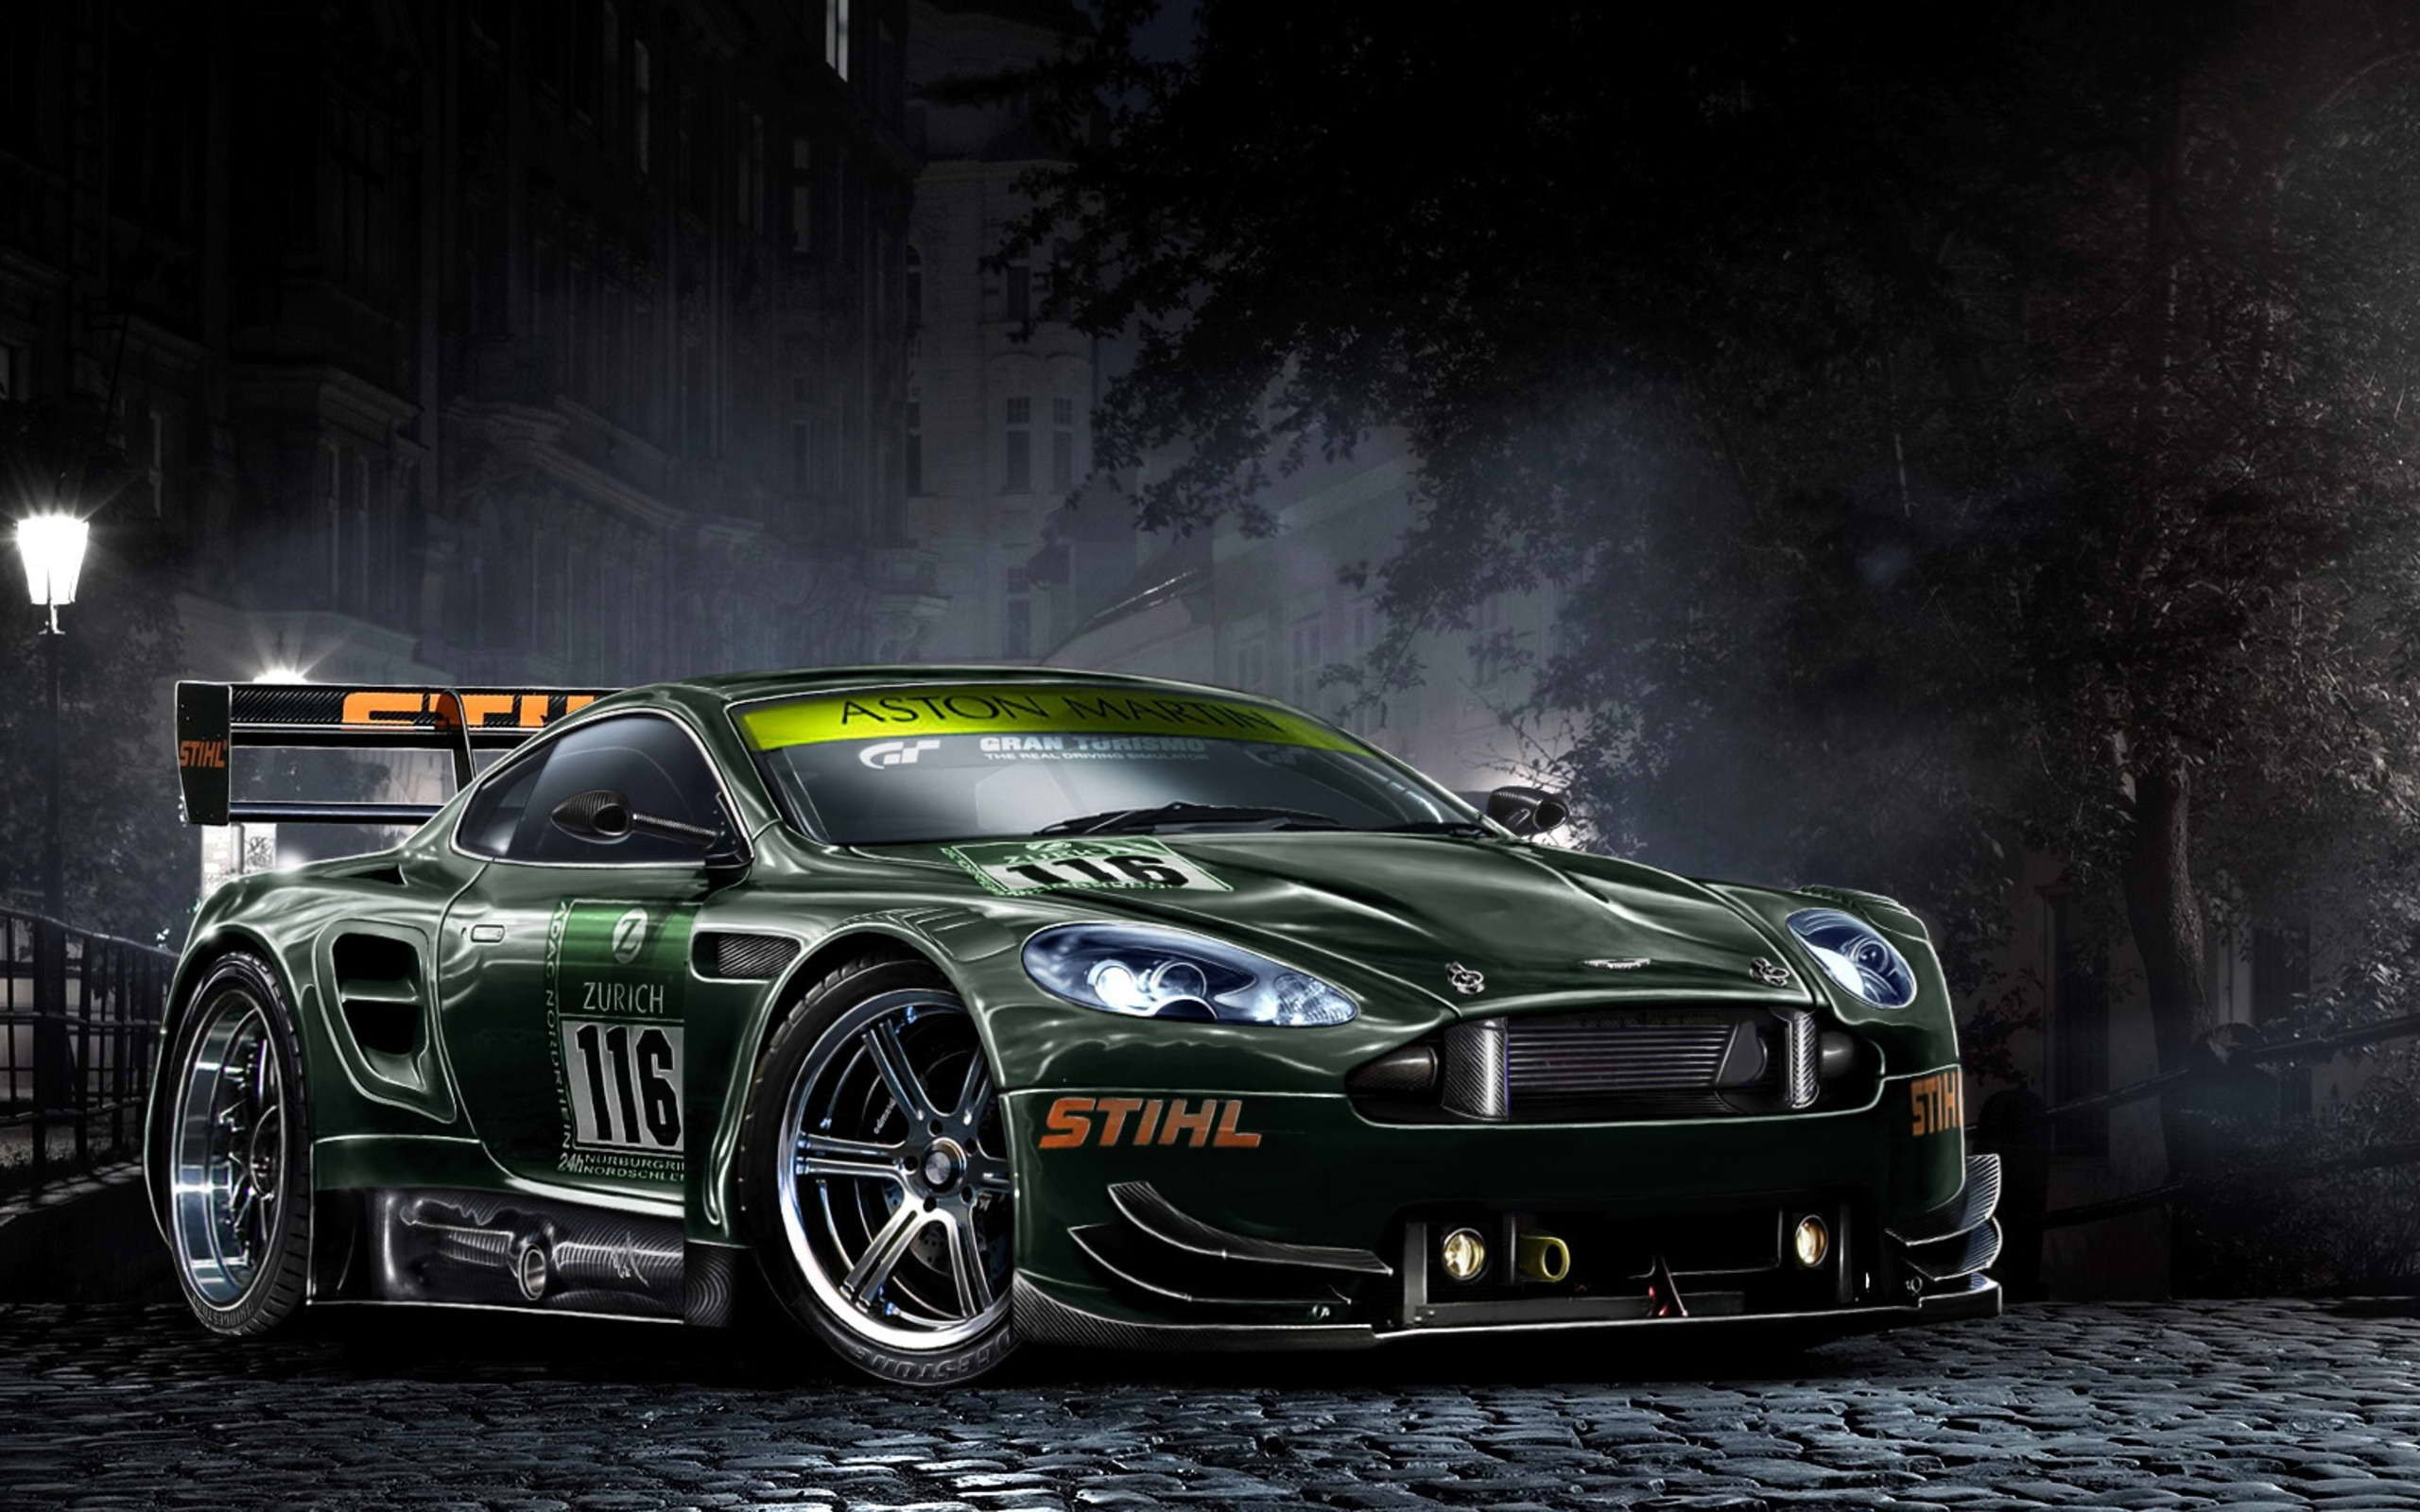 Street Race Cars Wallpapers (59+ images)